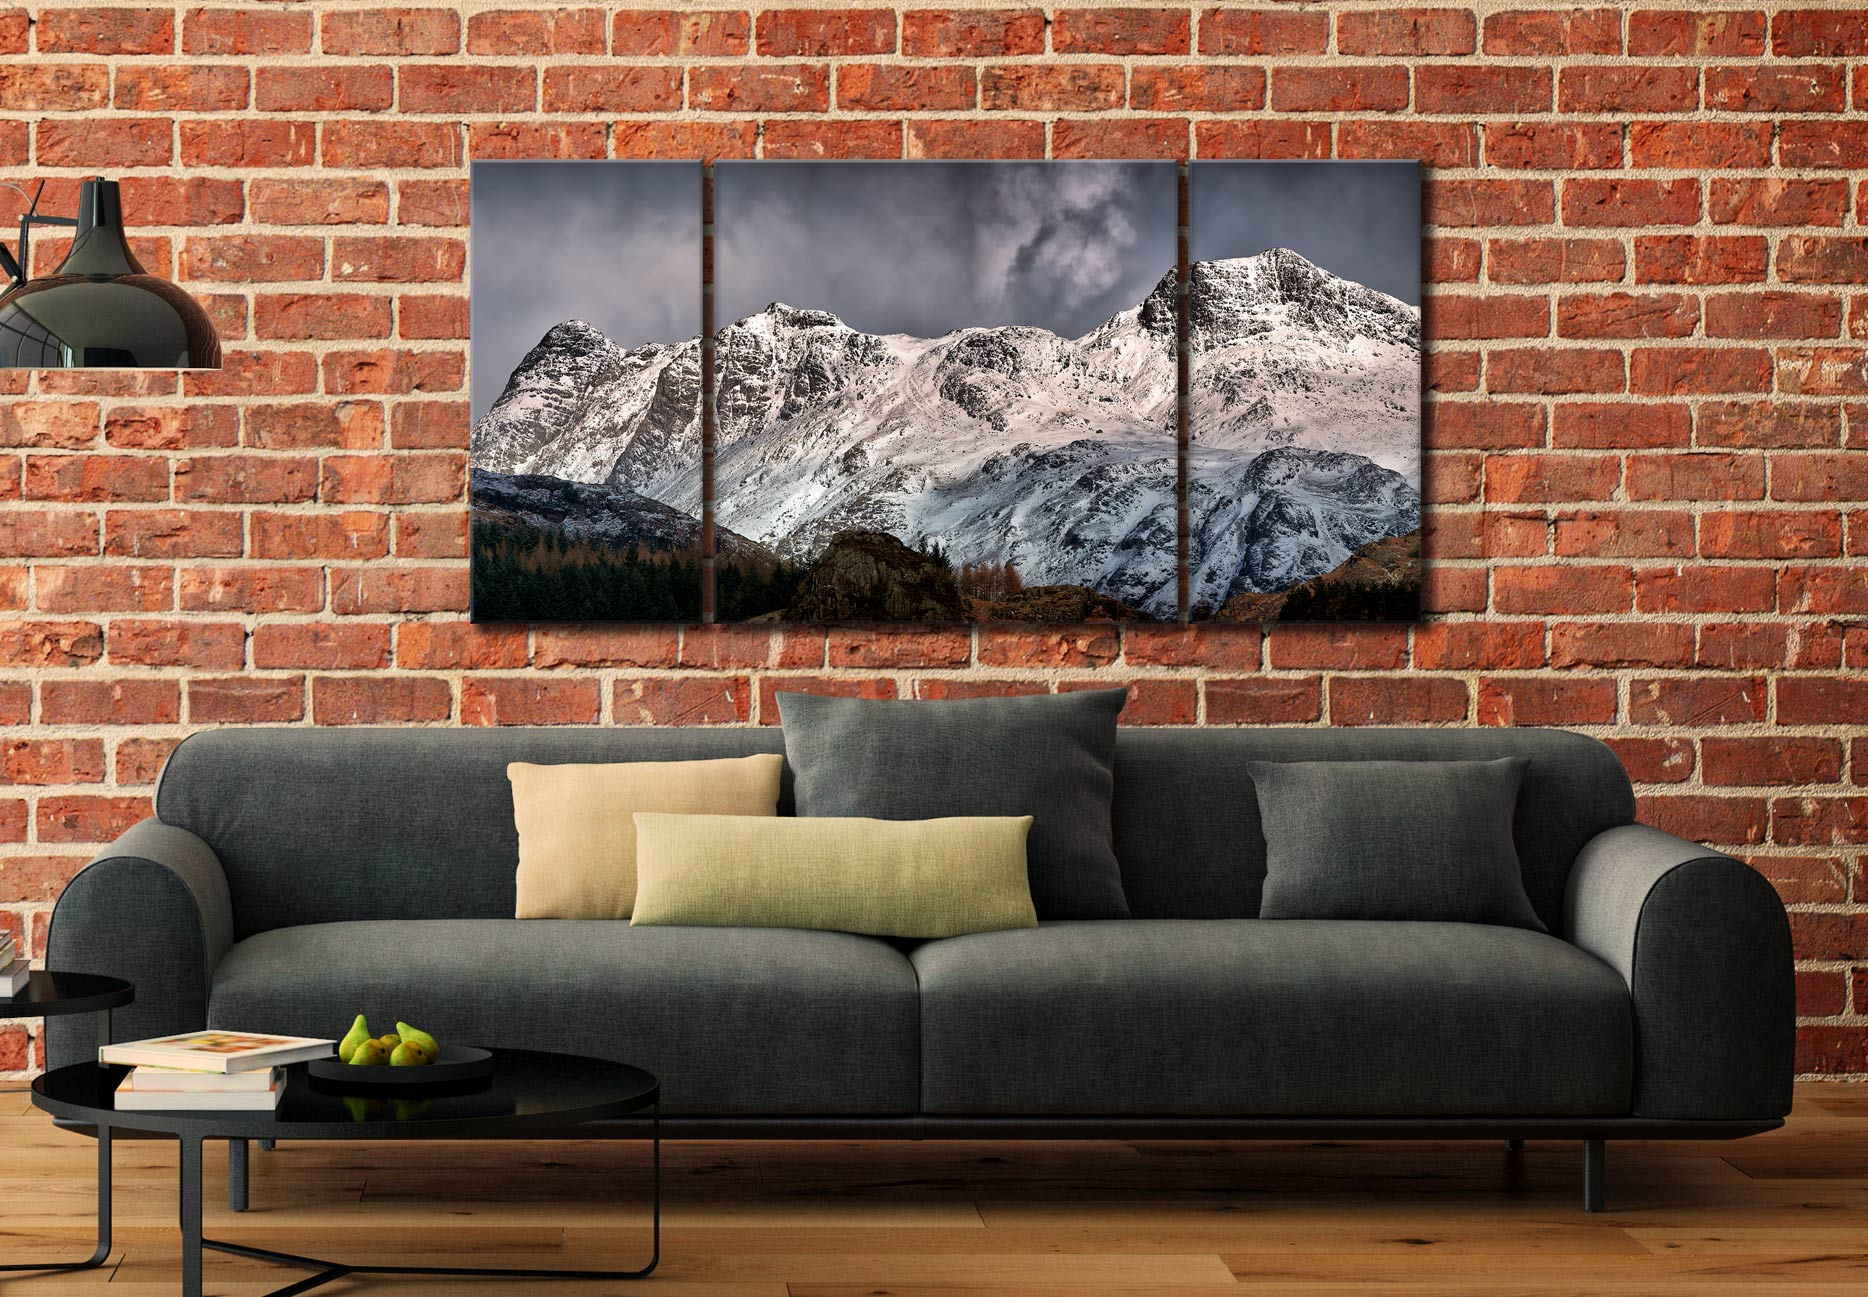 Snow on the Langdales - 3 Panel Wide Centre Canvas on Wall